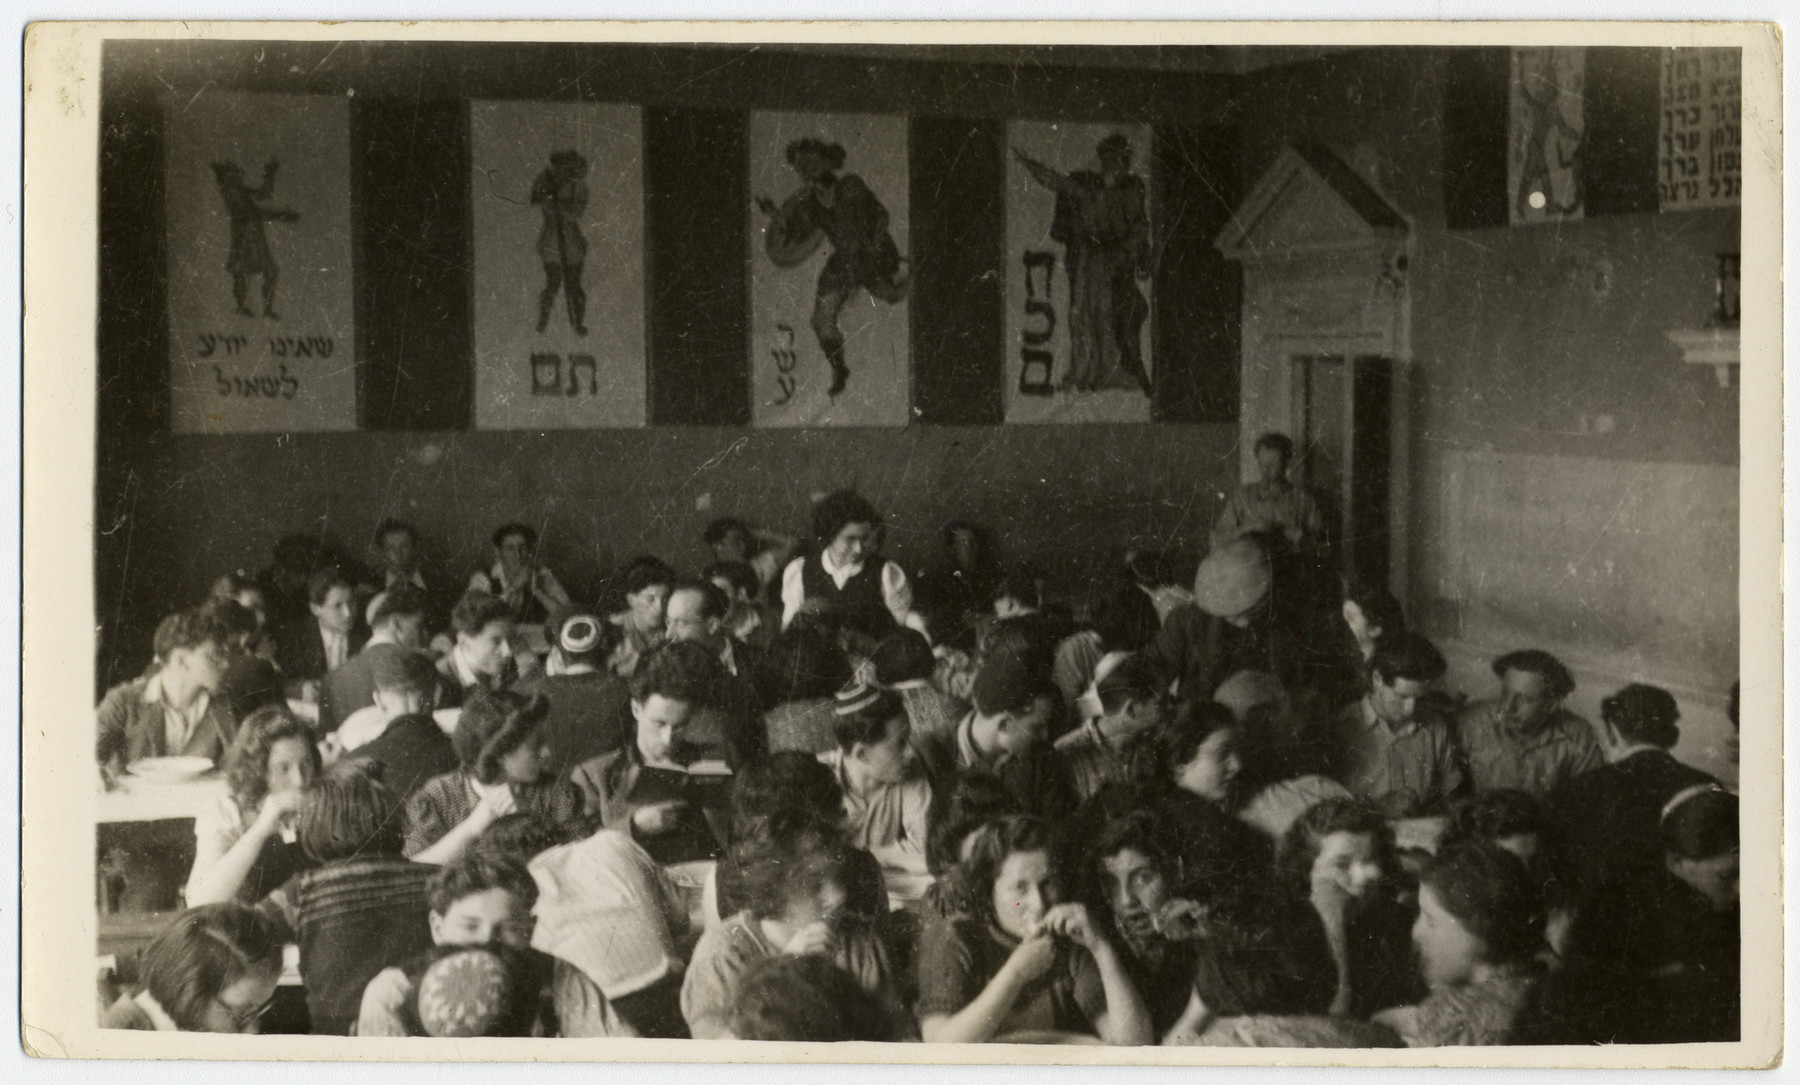 Jewish youth celebrate a model seder In Gwrich Castle.  Standing is Eva Carlebach.  To her left is Irving Seligman (head counselor).  Girl next to boy reading haggada is Bertel Karmiol.  Bottom left in glasses is Esther Graudenz.  Bottom center is Betti Einhorn and Bottom right are Edith Perlmutter, Bertel Rosenberg and Ruth Kessel.  In center, far right is Hersh Lerner.    The posters on the wall are four the four sons of the Passover haggadah.